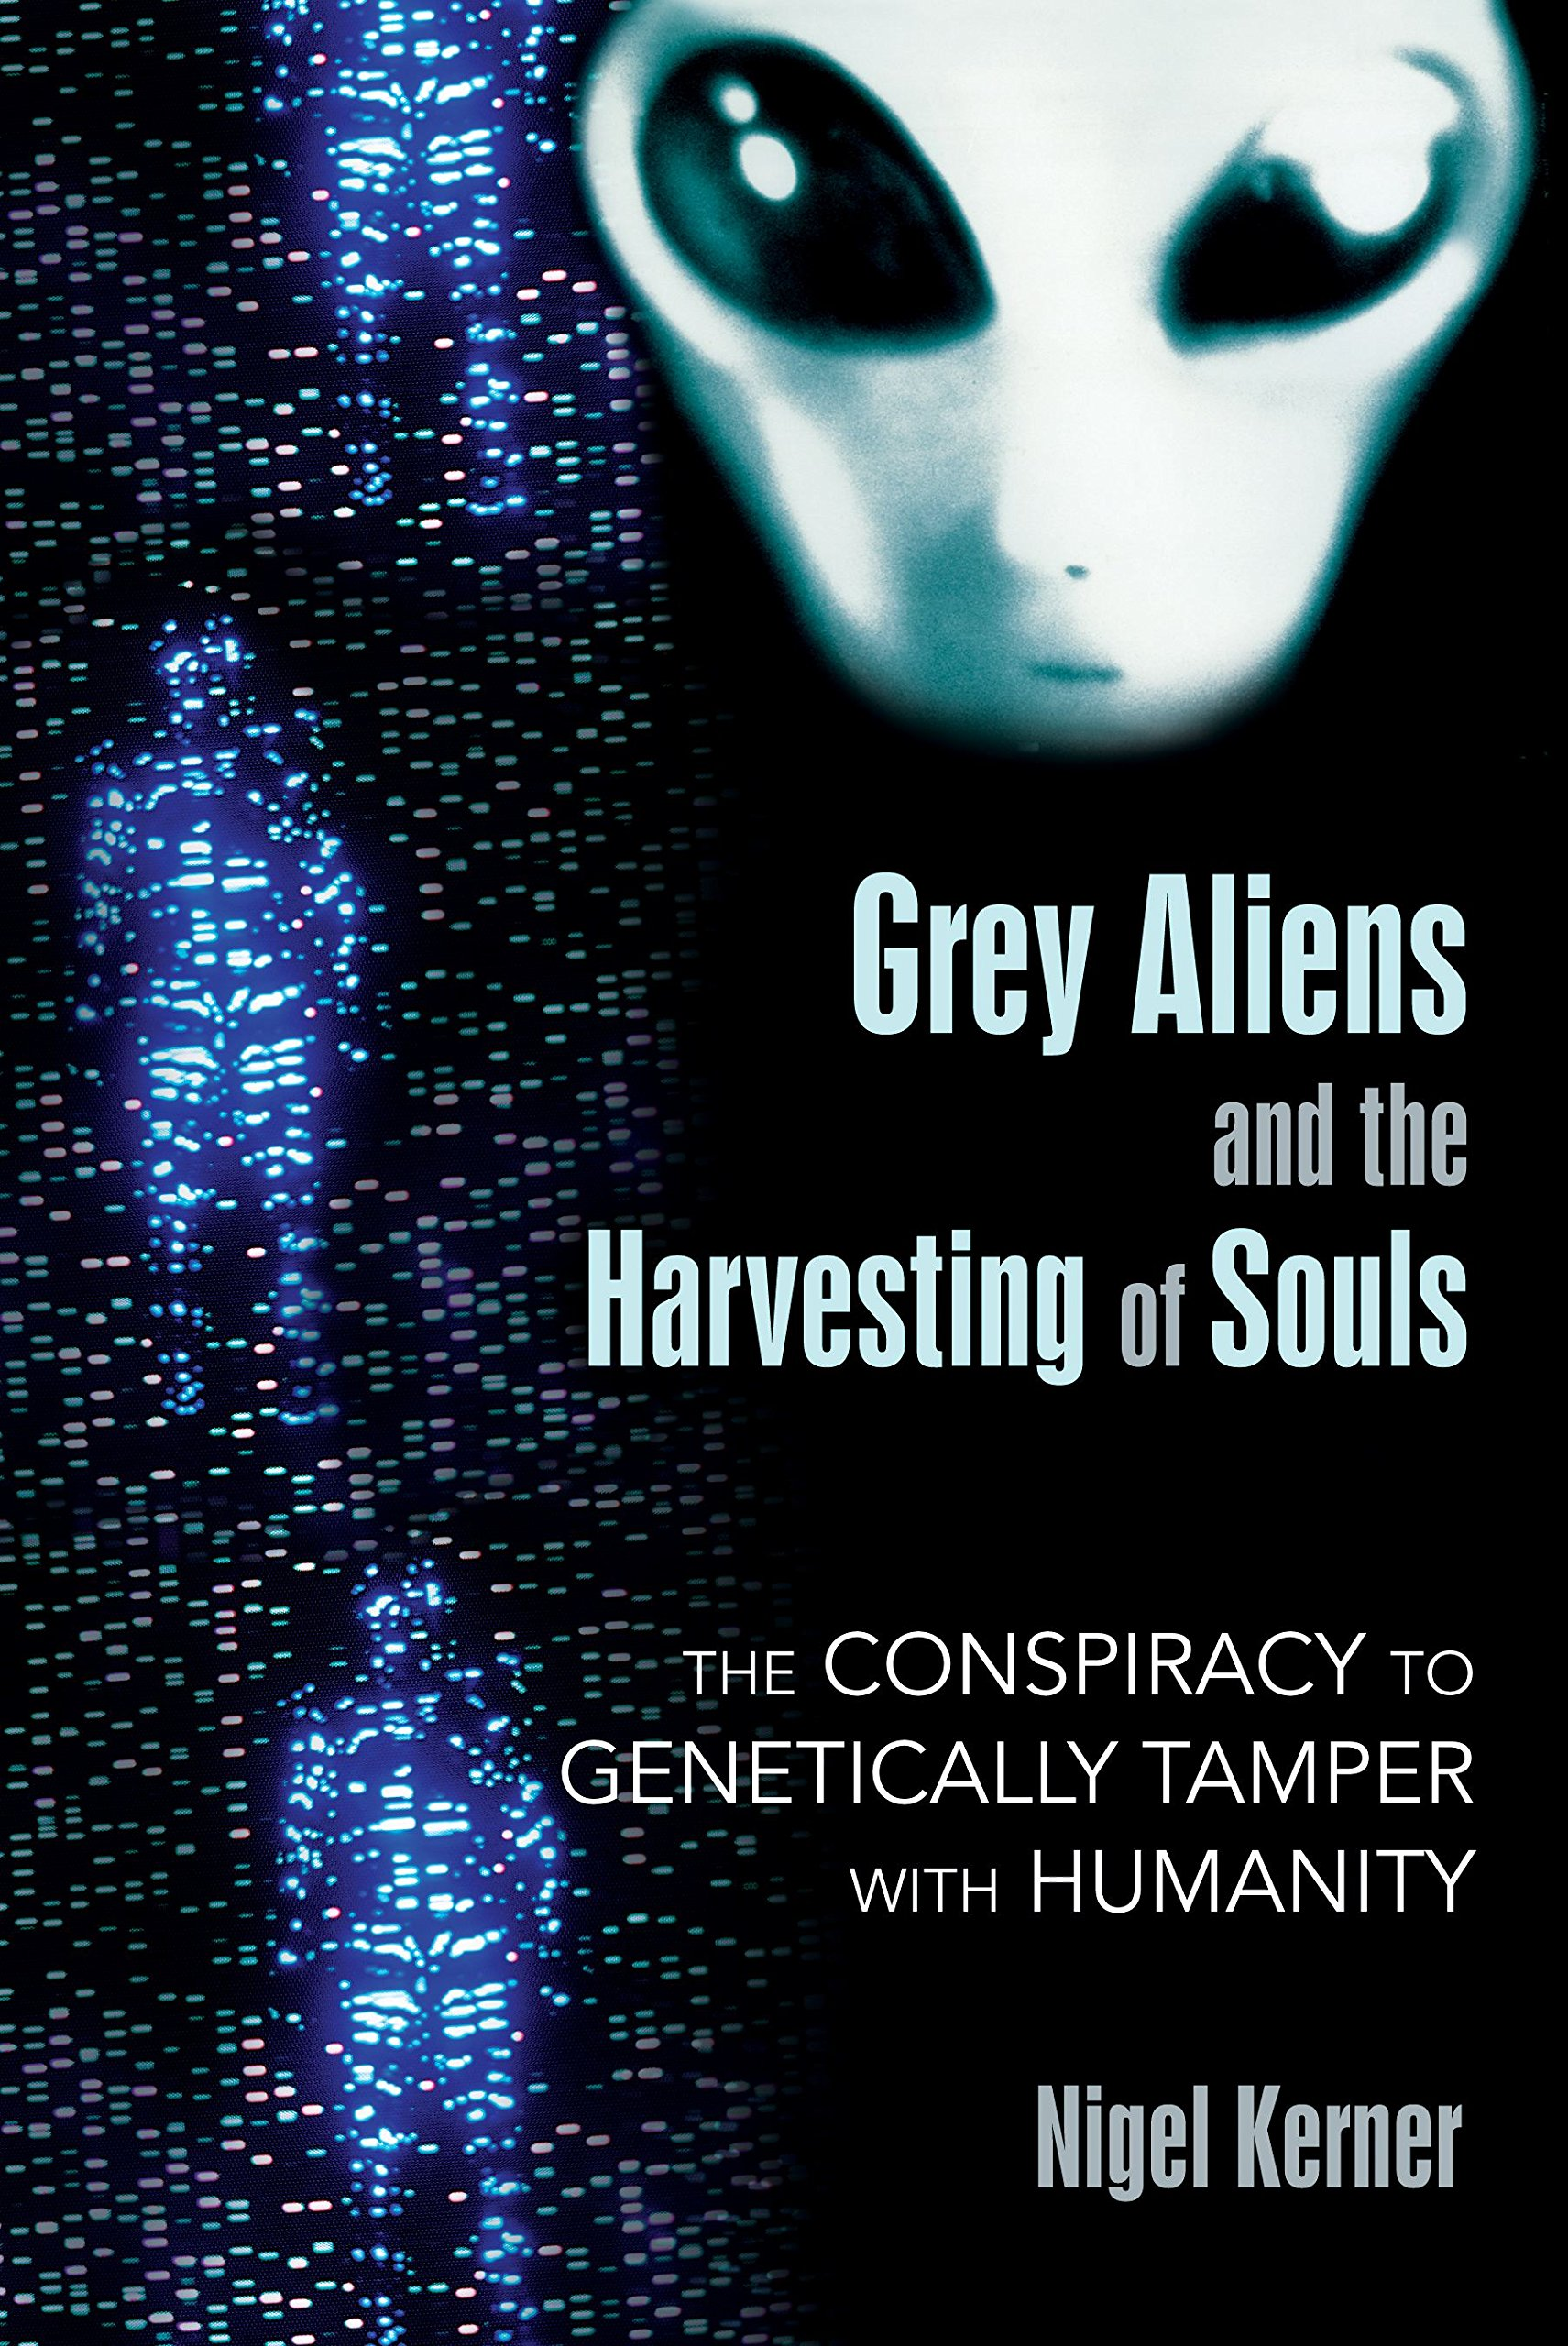 Grey Aliens and the Harvesting of Souls: The Conspiracy to Genetically Tamper with Humanity by Nigel Kerner book cover